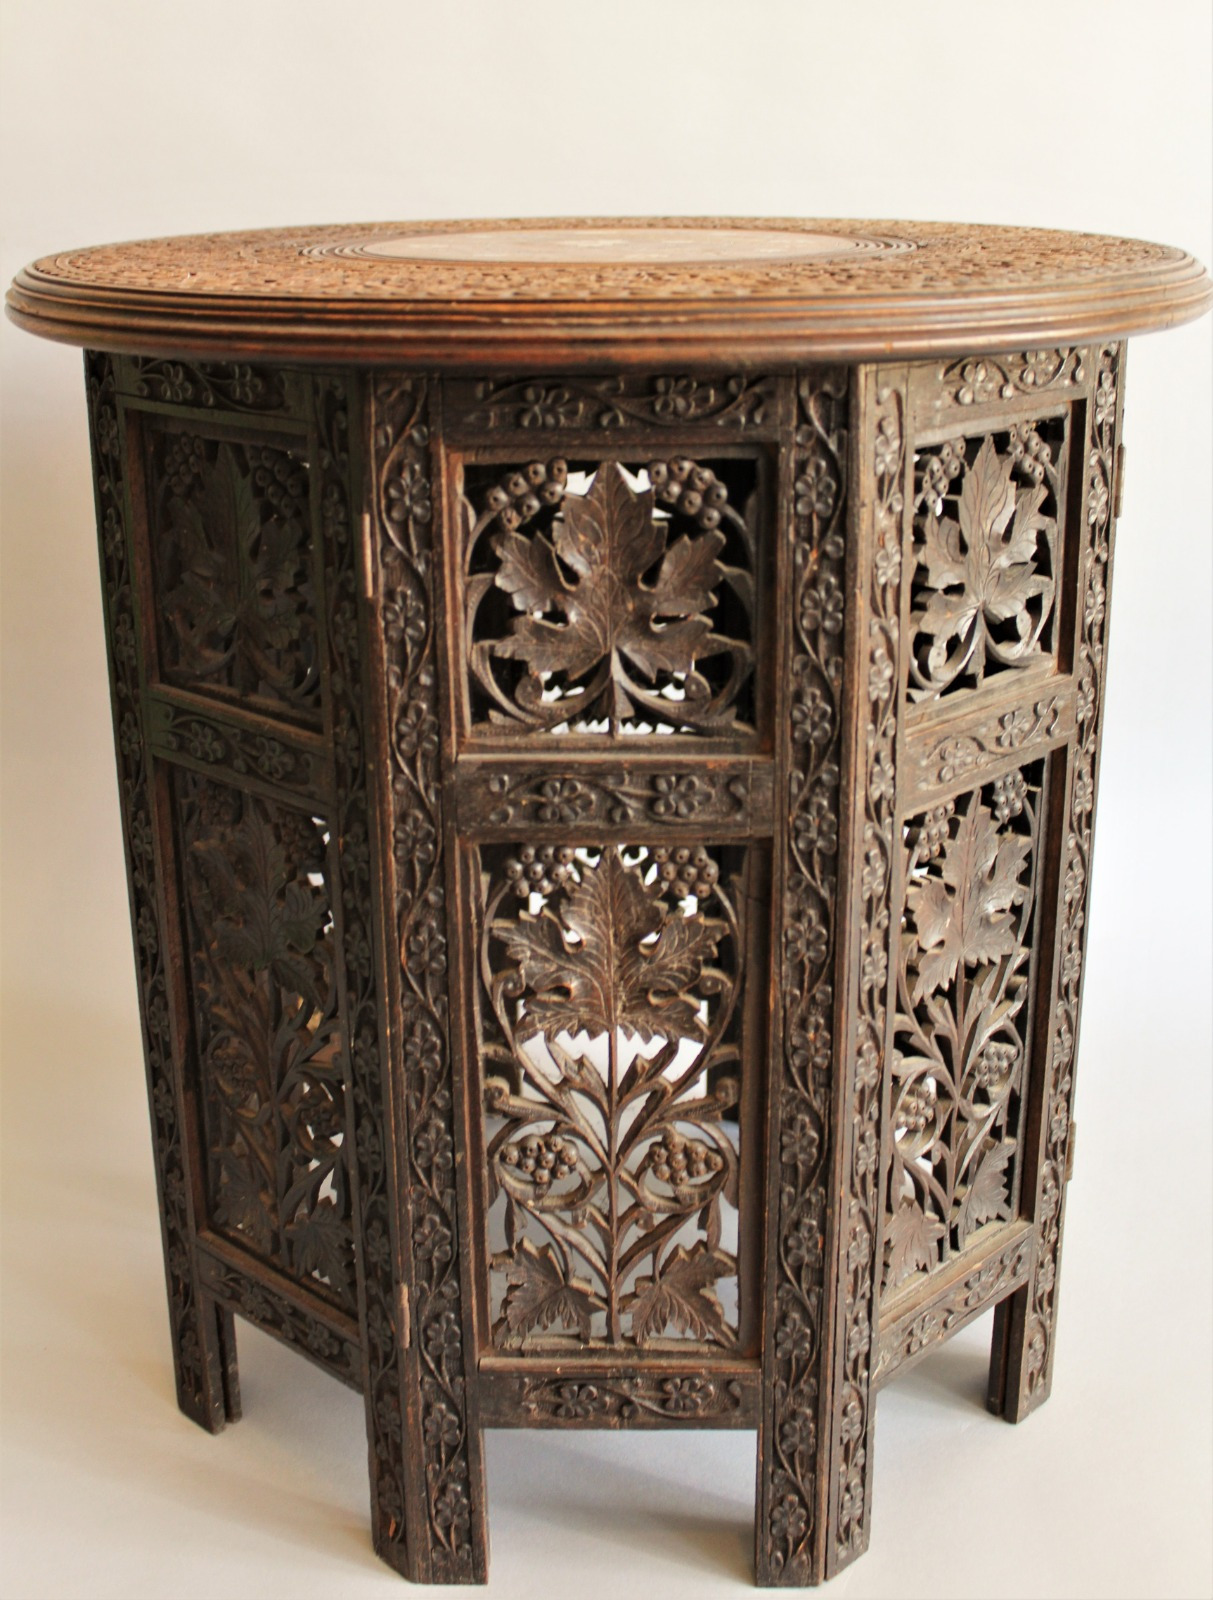 antique inlaid and carved indian hardwood table c1900